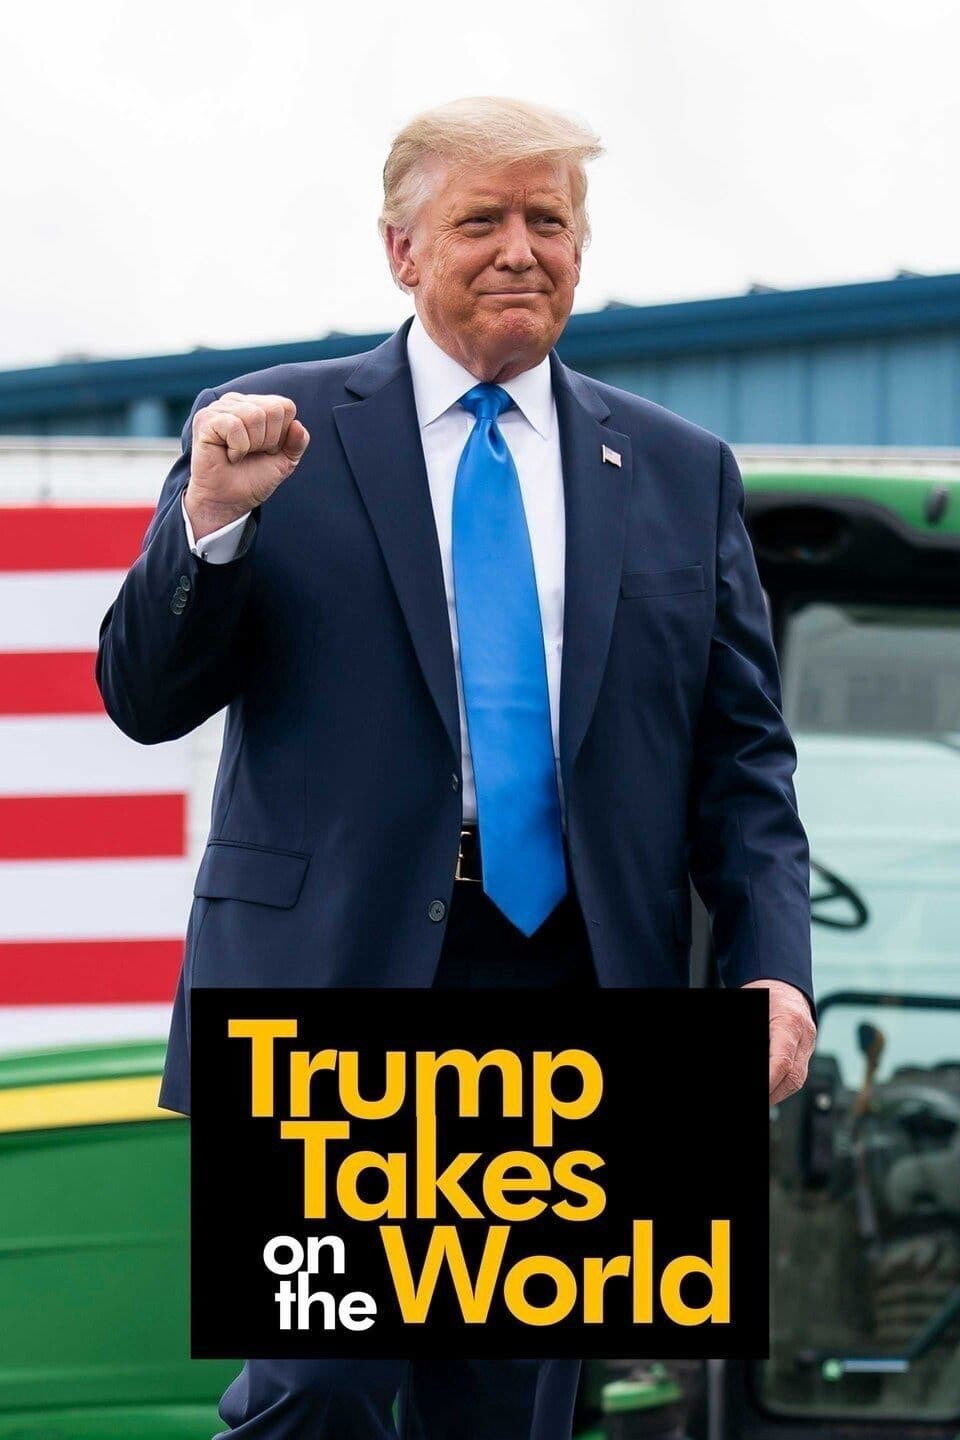 Trump Takes on the World - Season 1| Watch Movies Online